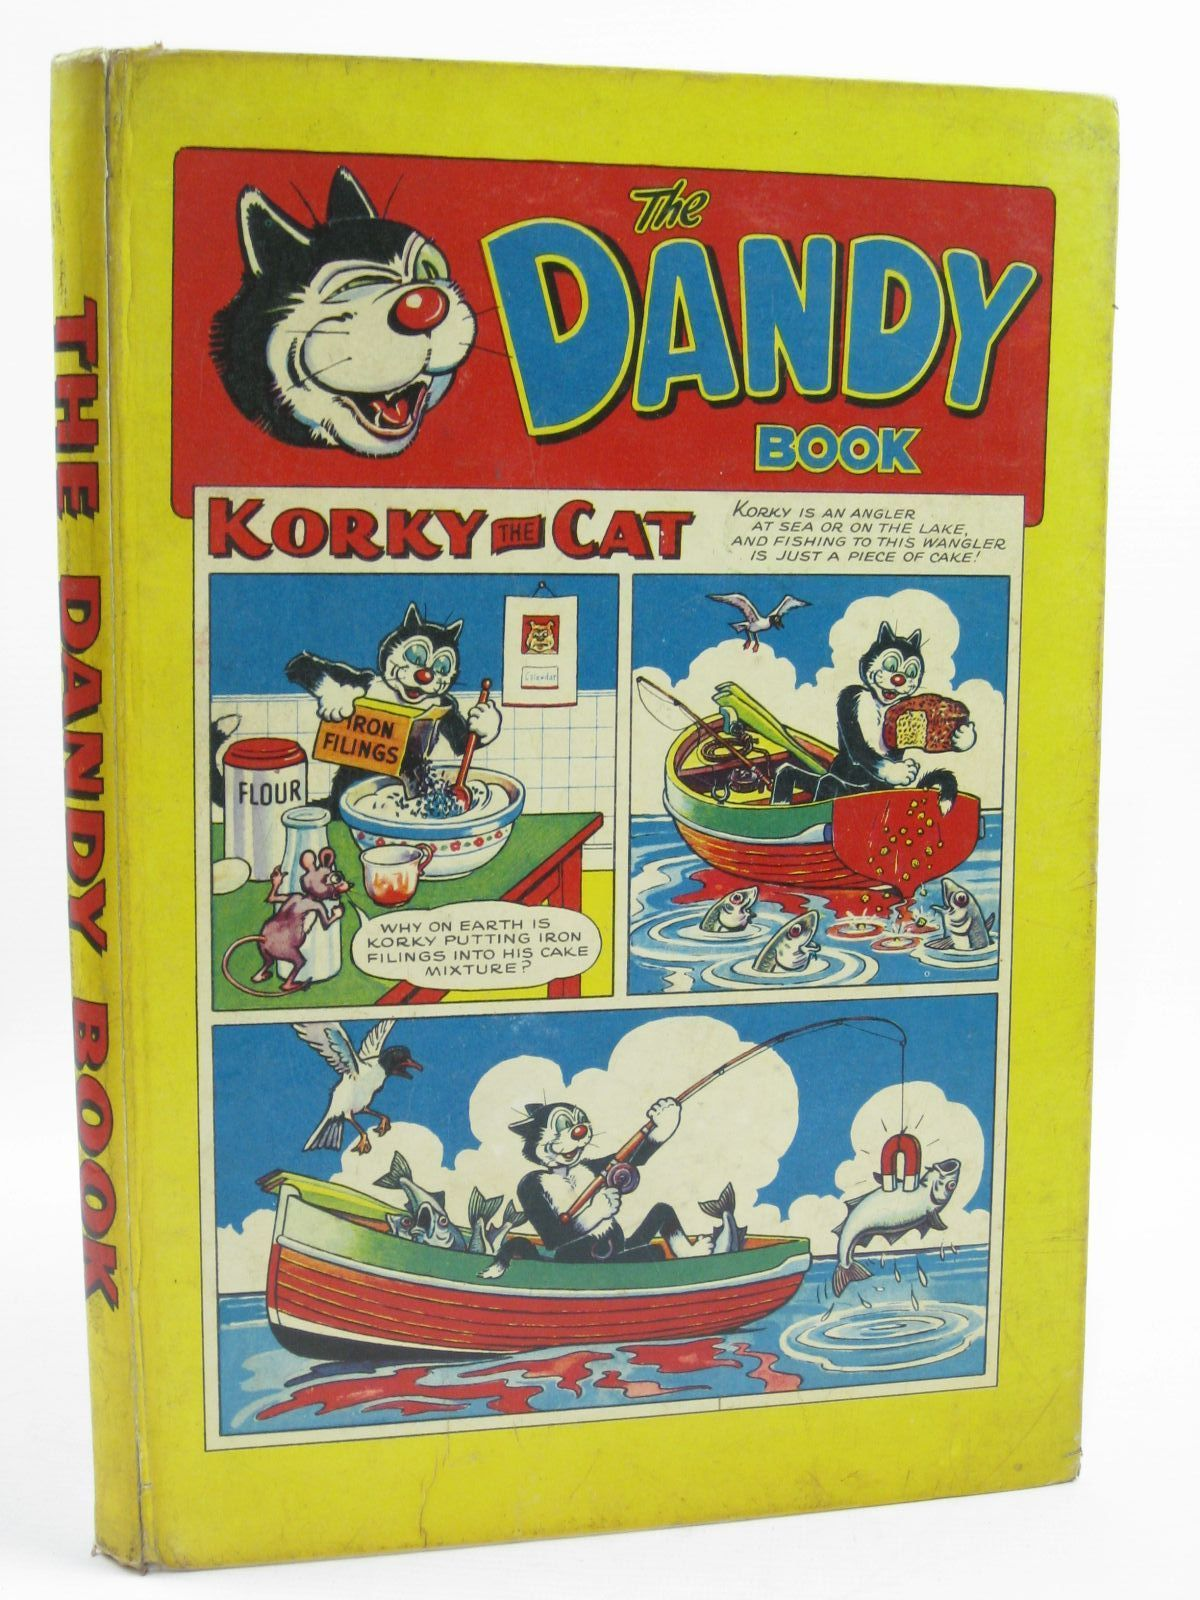 Photo of THE DANDY BOOK 1958 published by D.C. Thomson & Co Ltd. (STOCK CODE: 1507261)  for sale by Stella & Rose's Books